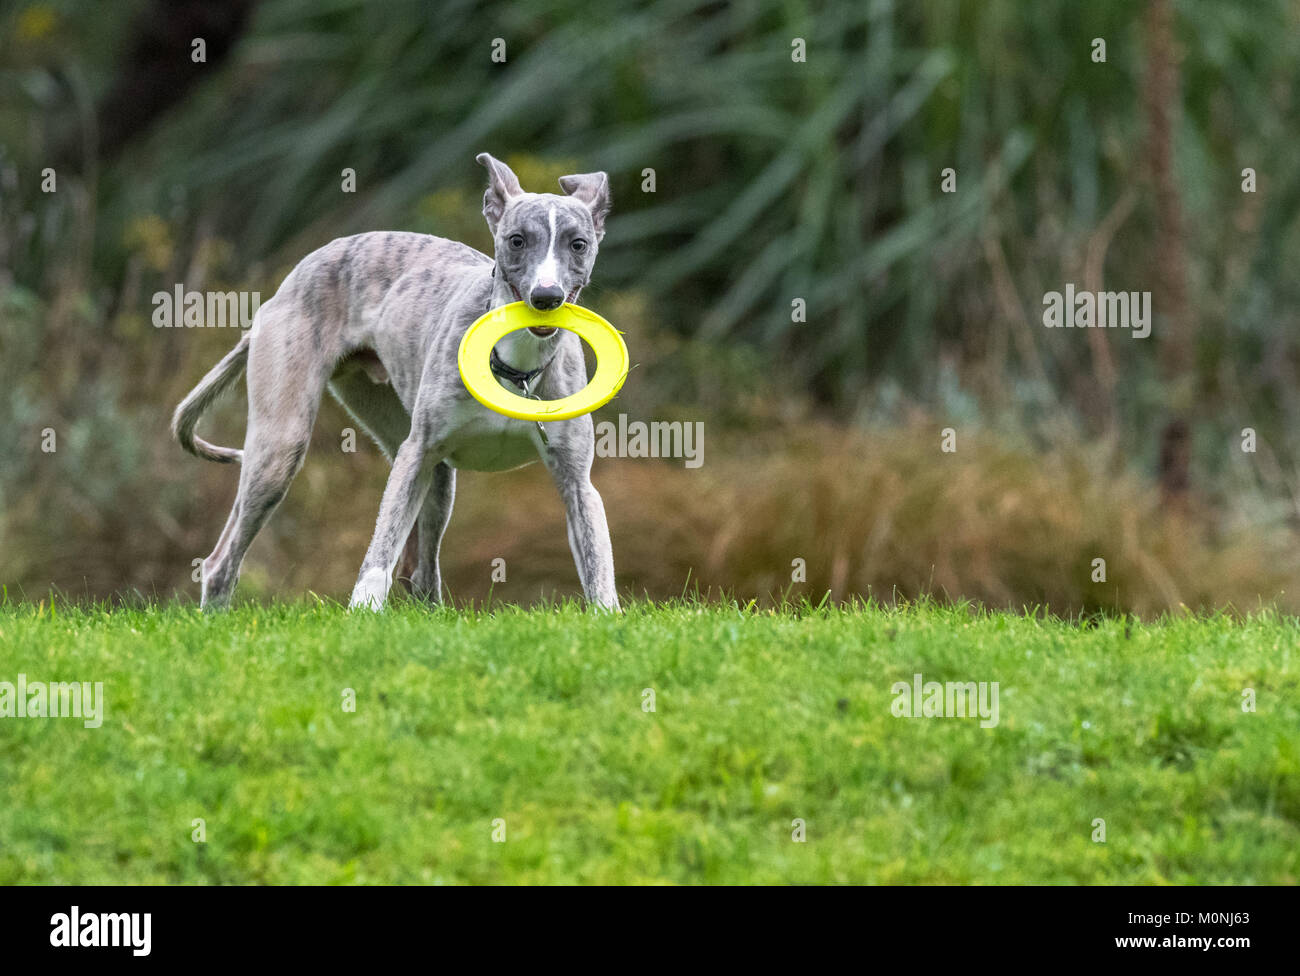 Whippet pup with a plastic teething ring come frisbee. - Stock Image